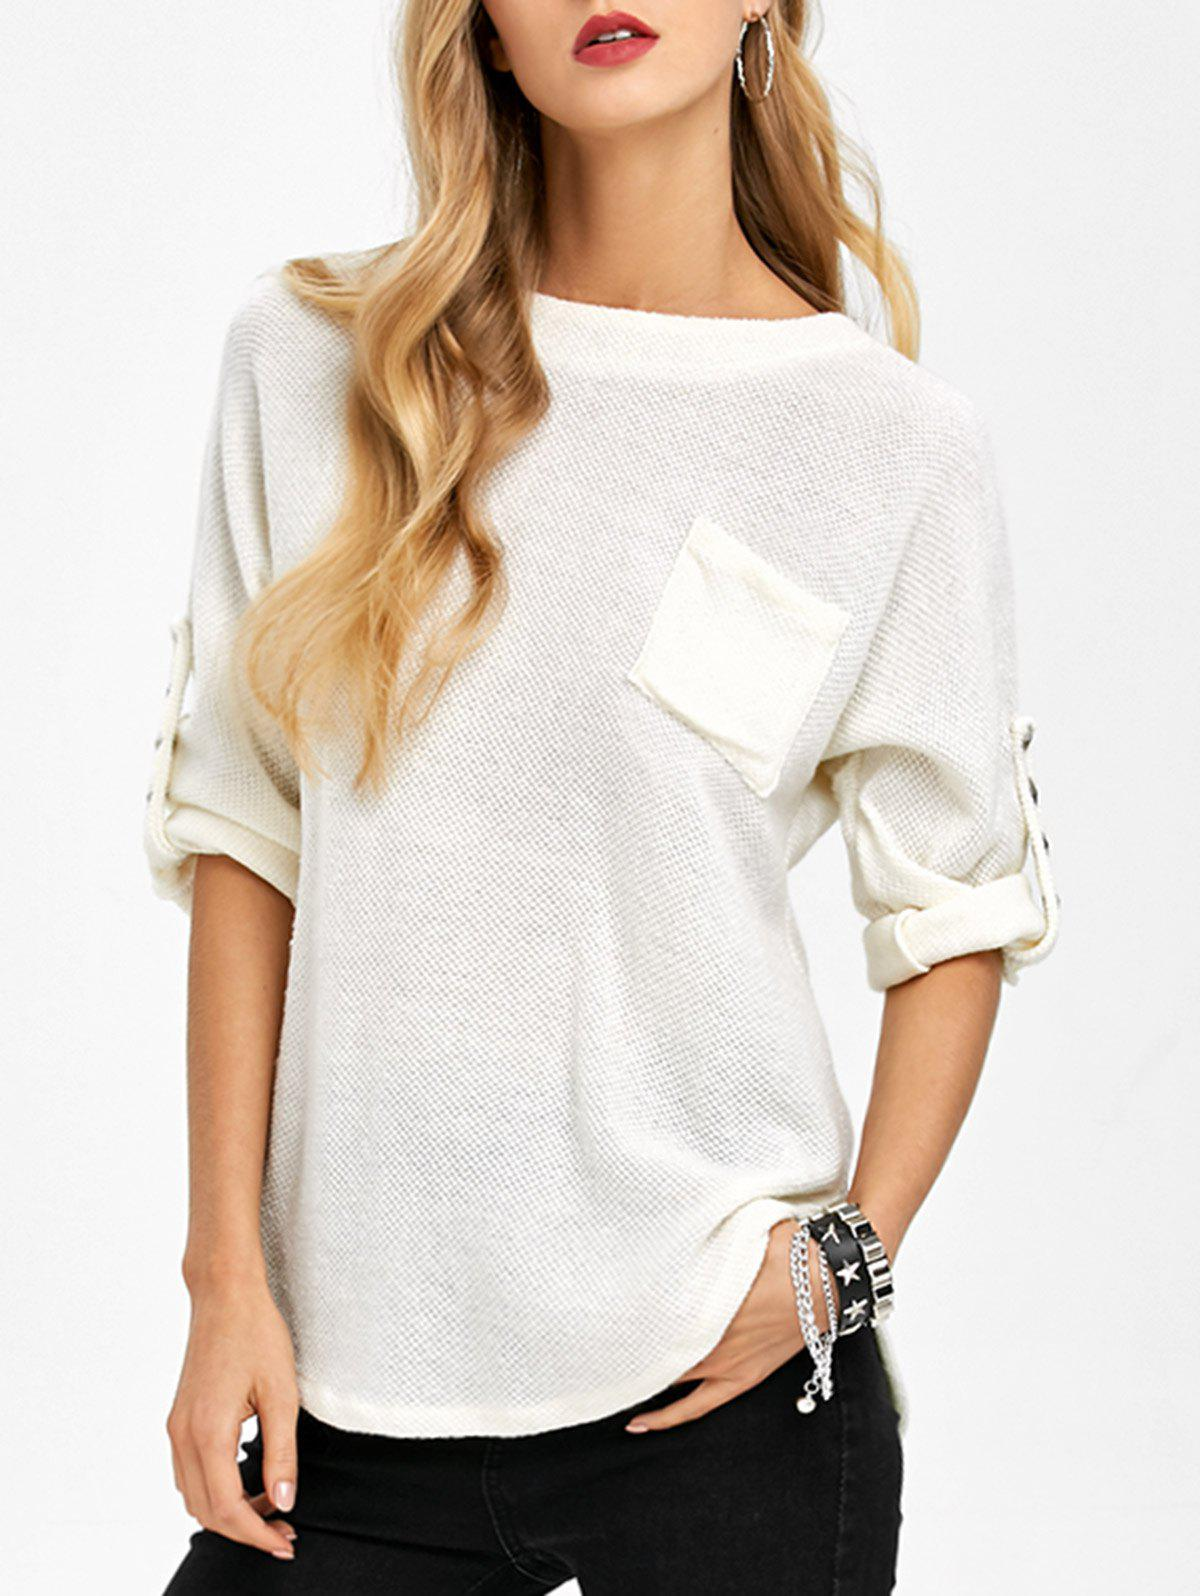 Loos Fit One Pocket Rivets Embellished Knitwear - WHITE L